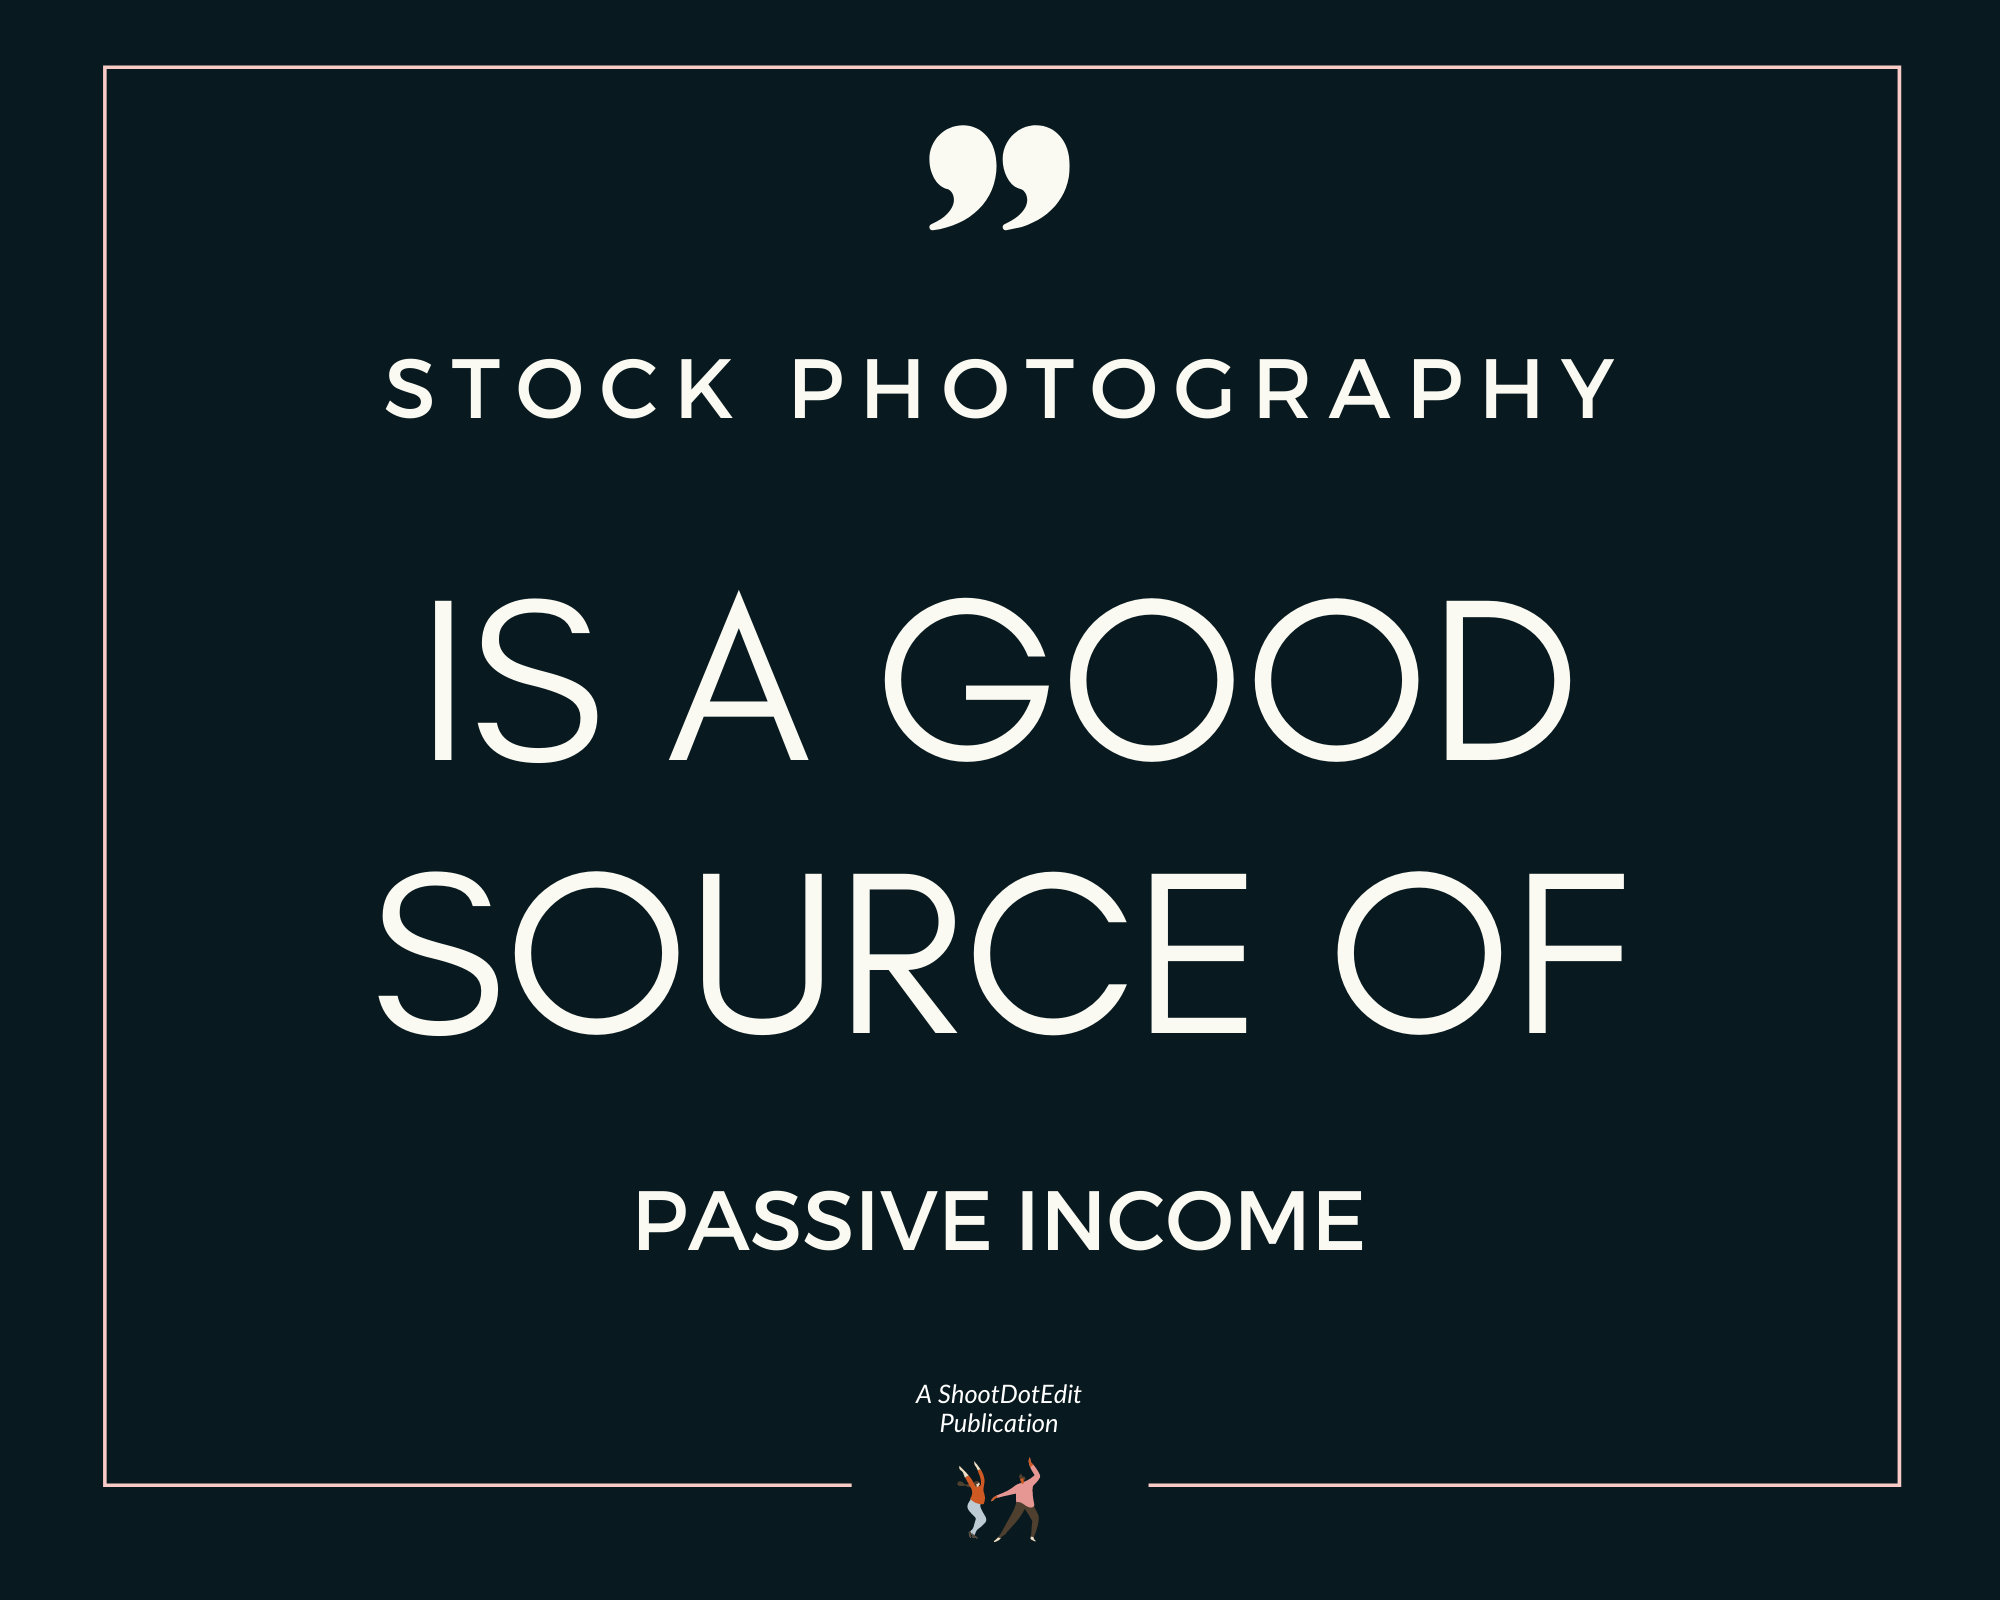 Infographic stating stock photography is a good source of passive income